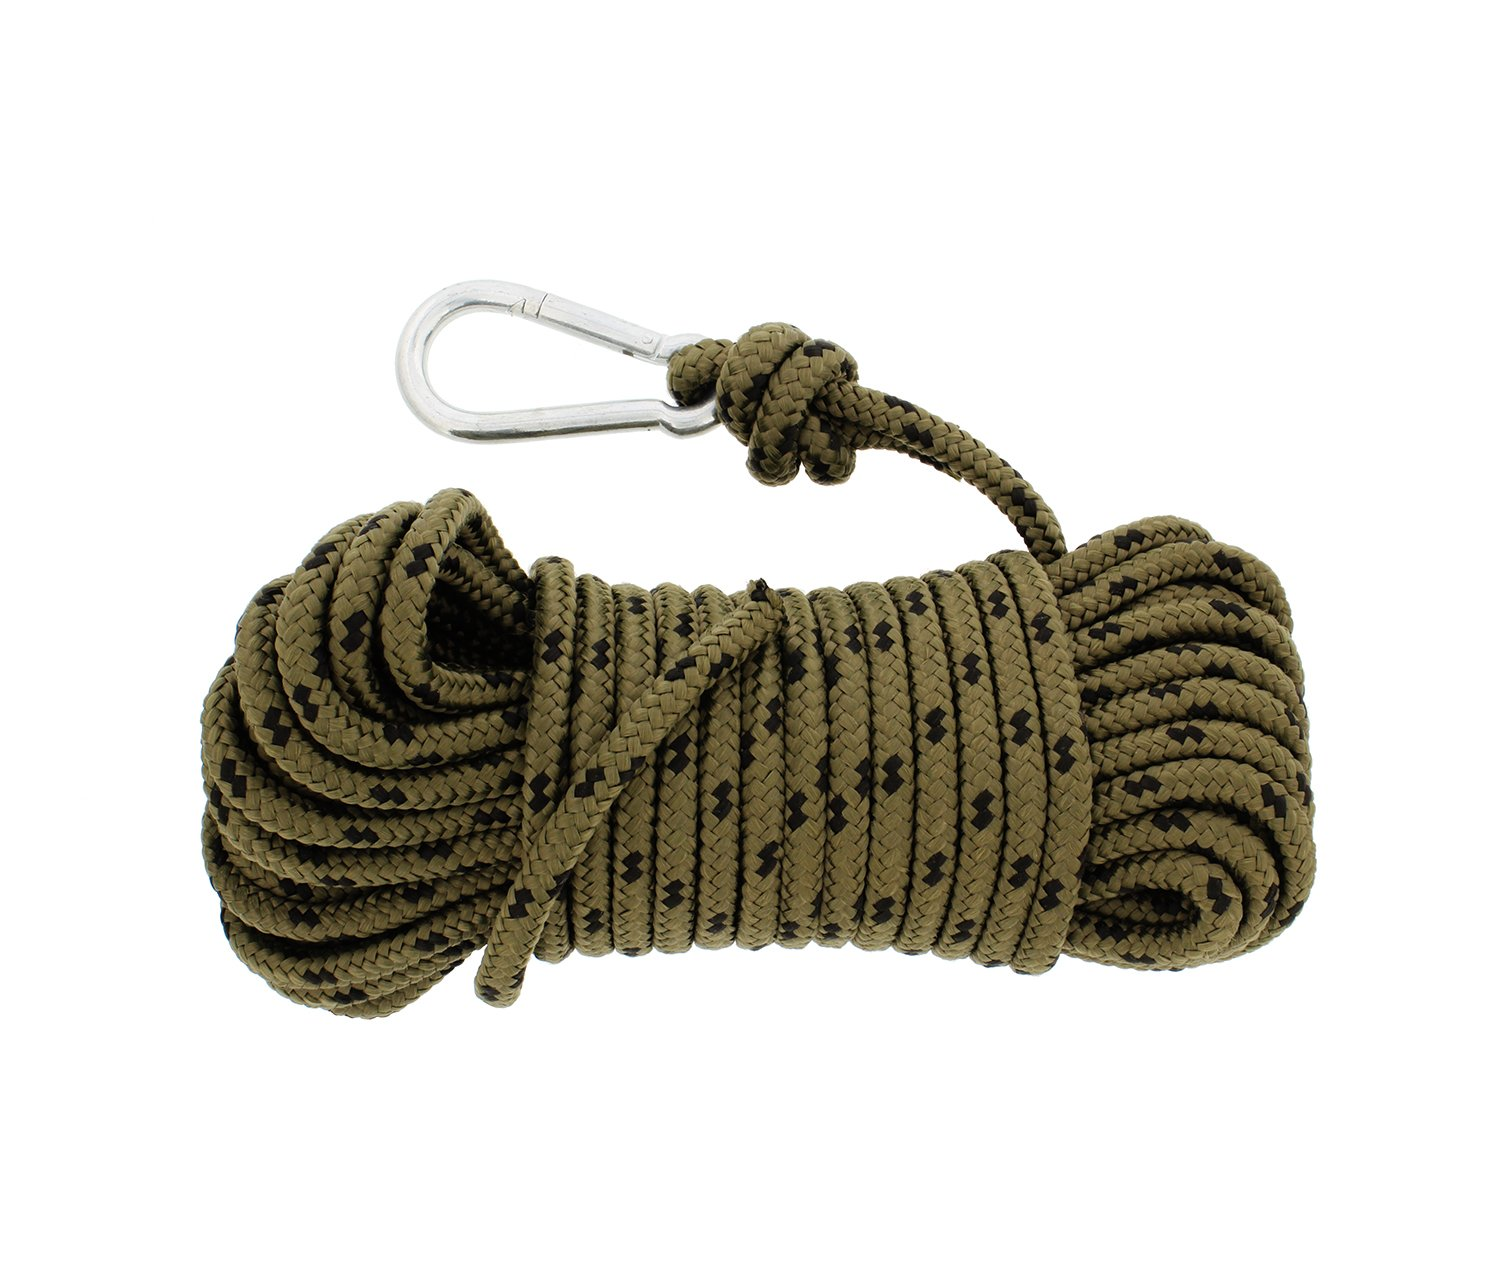 Redneck Convent Nylon Braided Rope & Carabiner 3/8 Inch x 50 Feet 220 lbs Pound - Cleat Tensioner Rigging Device Tie Down Strap Anchor by Redneck Convent